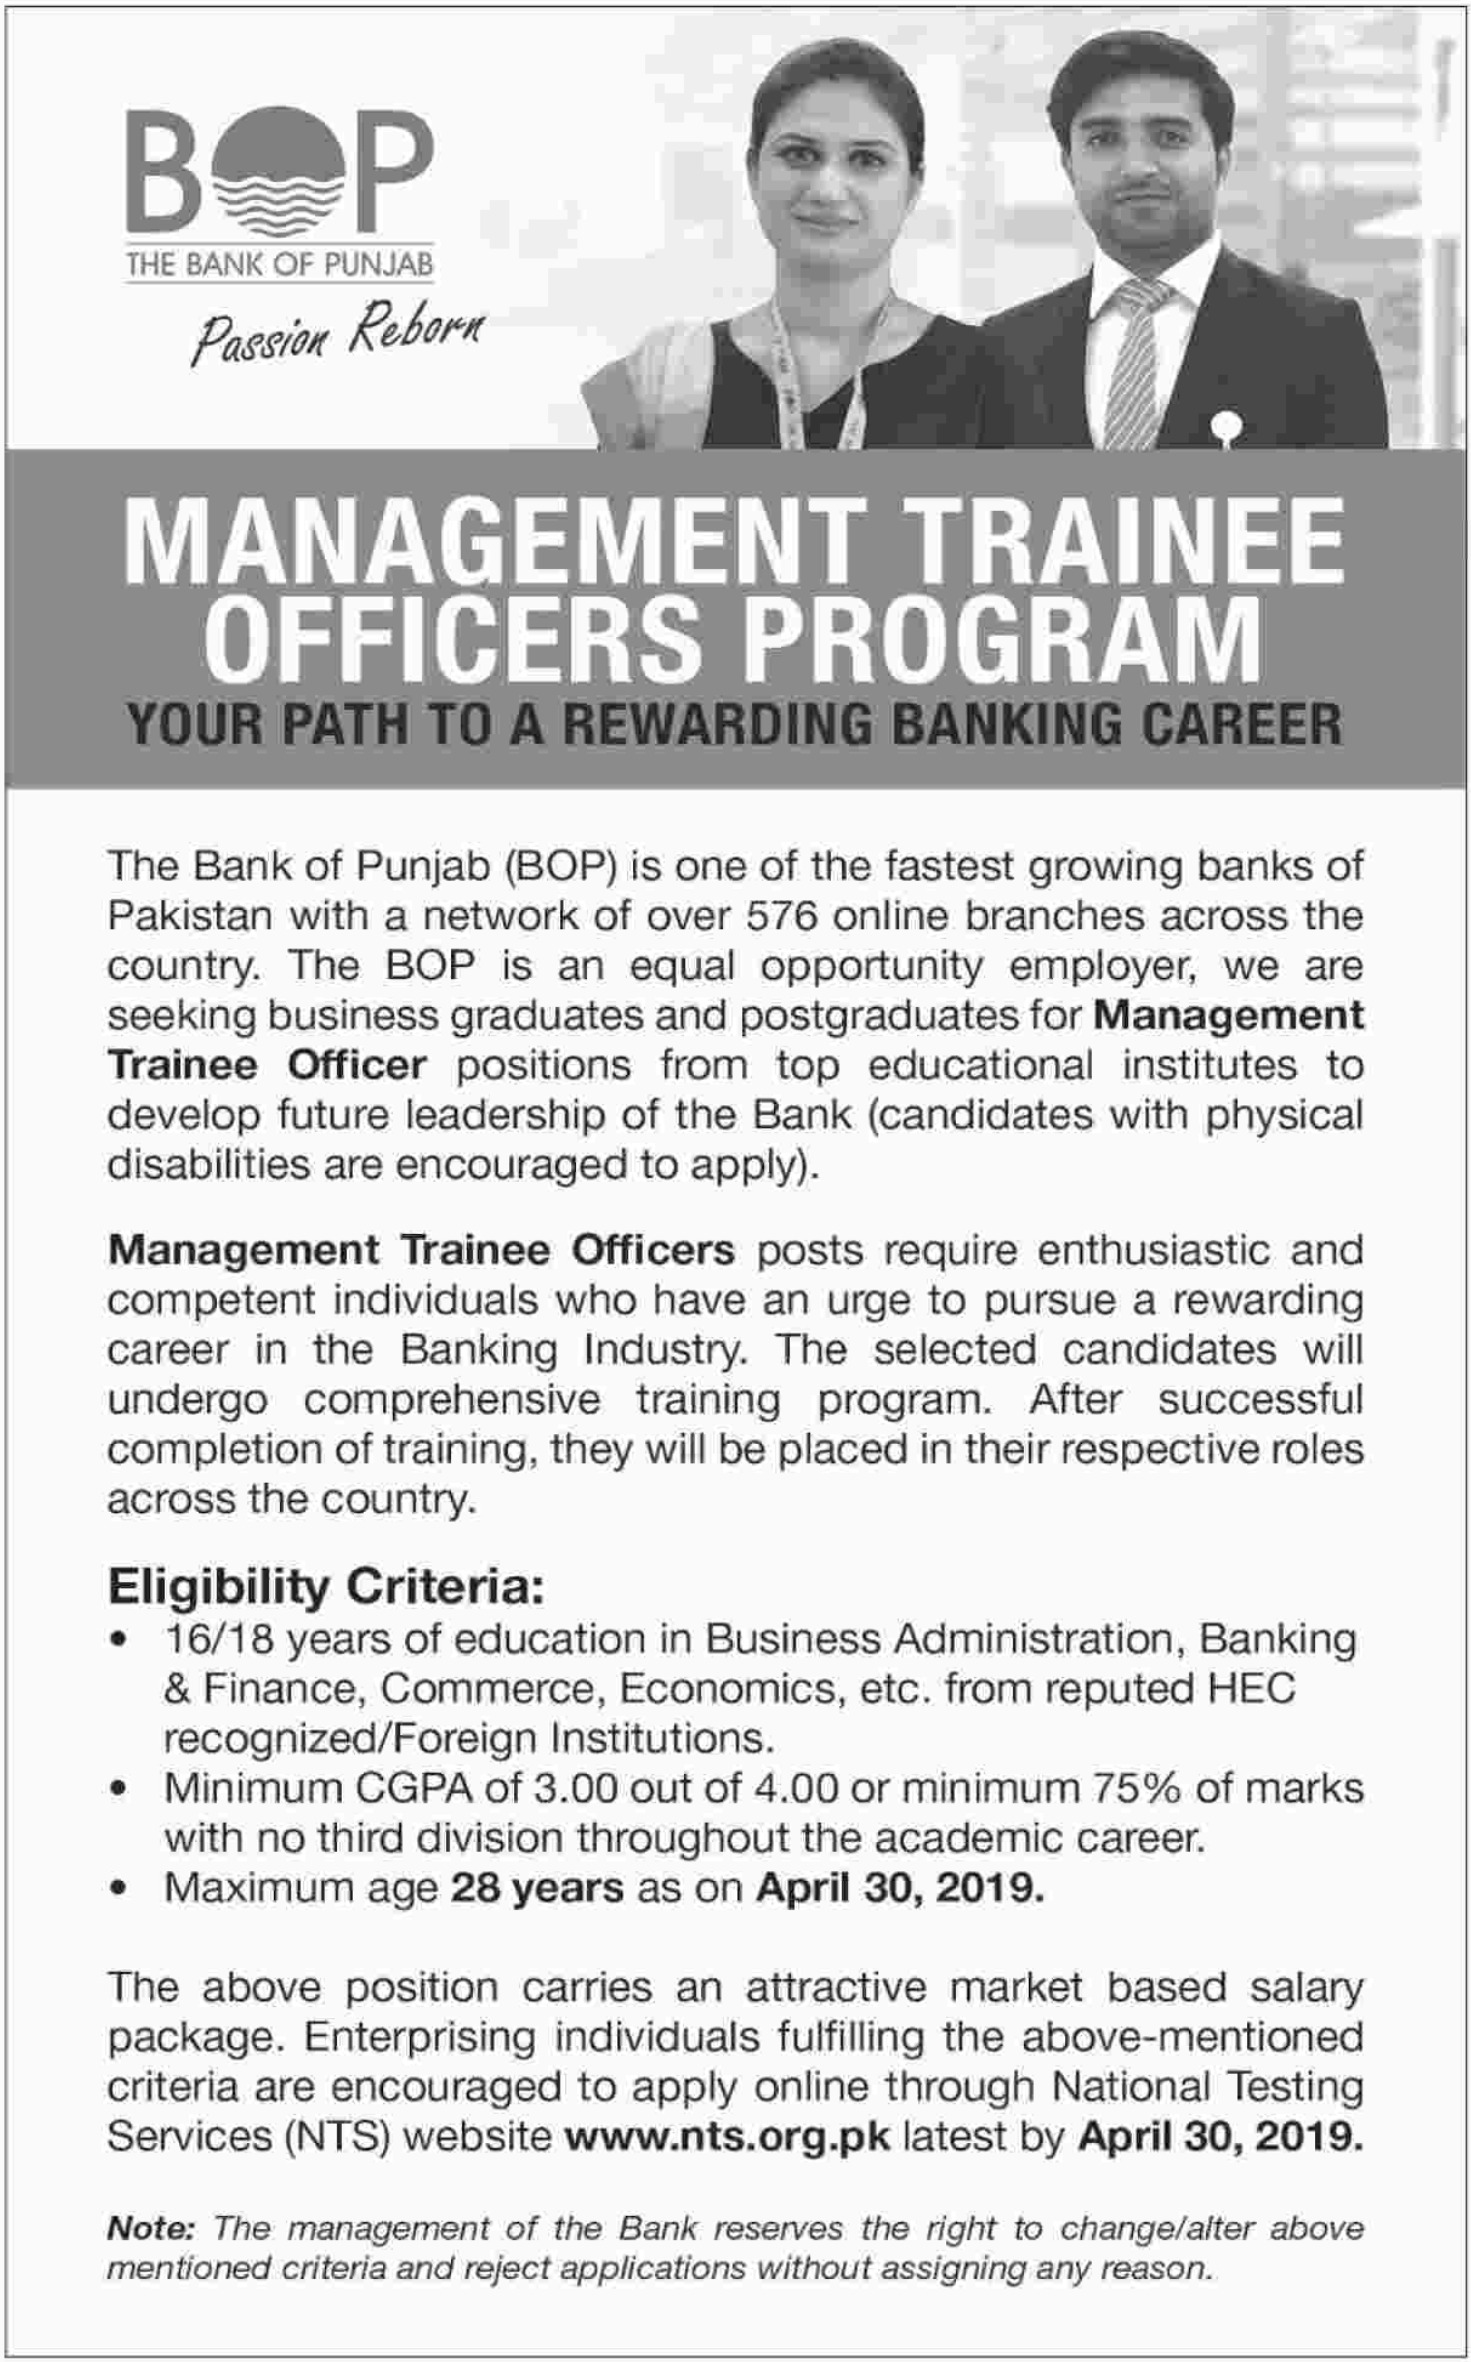 Bank of Punjab BOP Jobs 2019 Apply through NTS for Management Trainee Officers Program